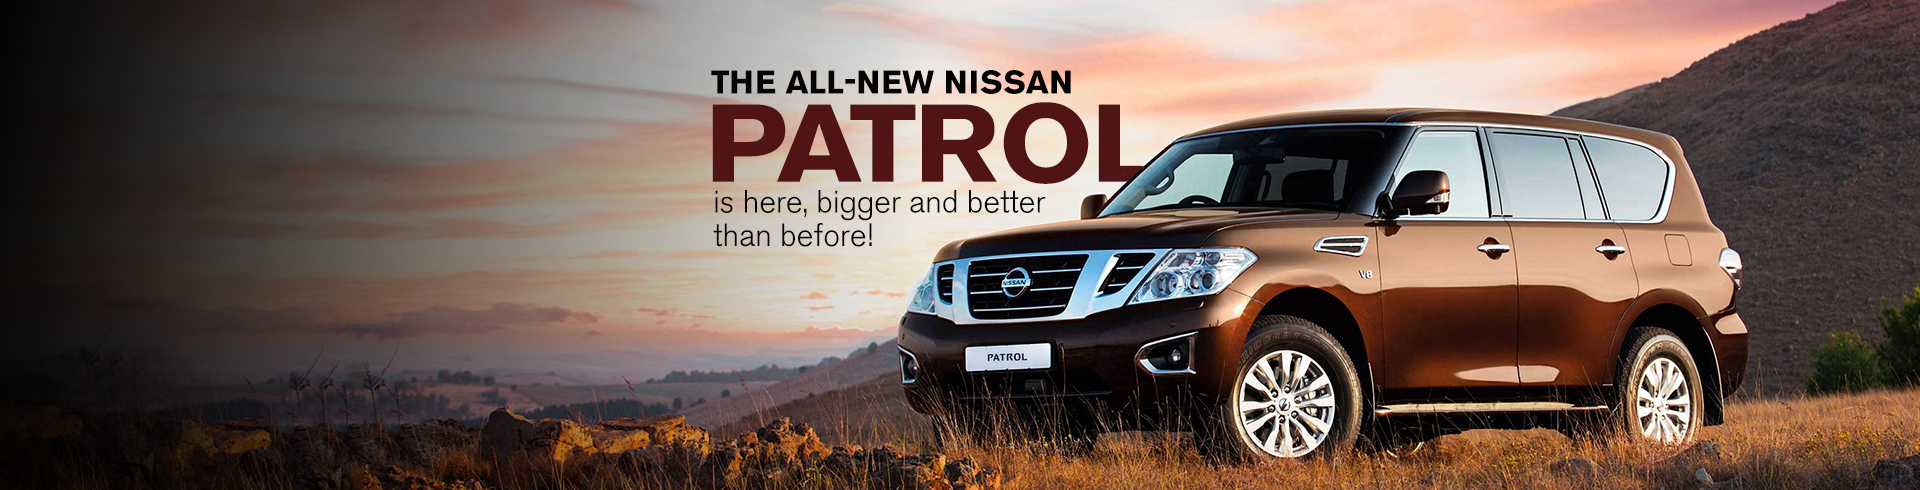 The all-new Nissan PATROL